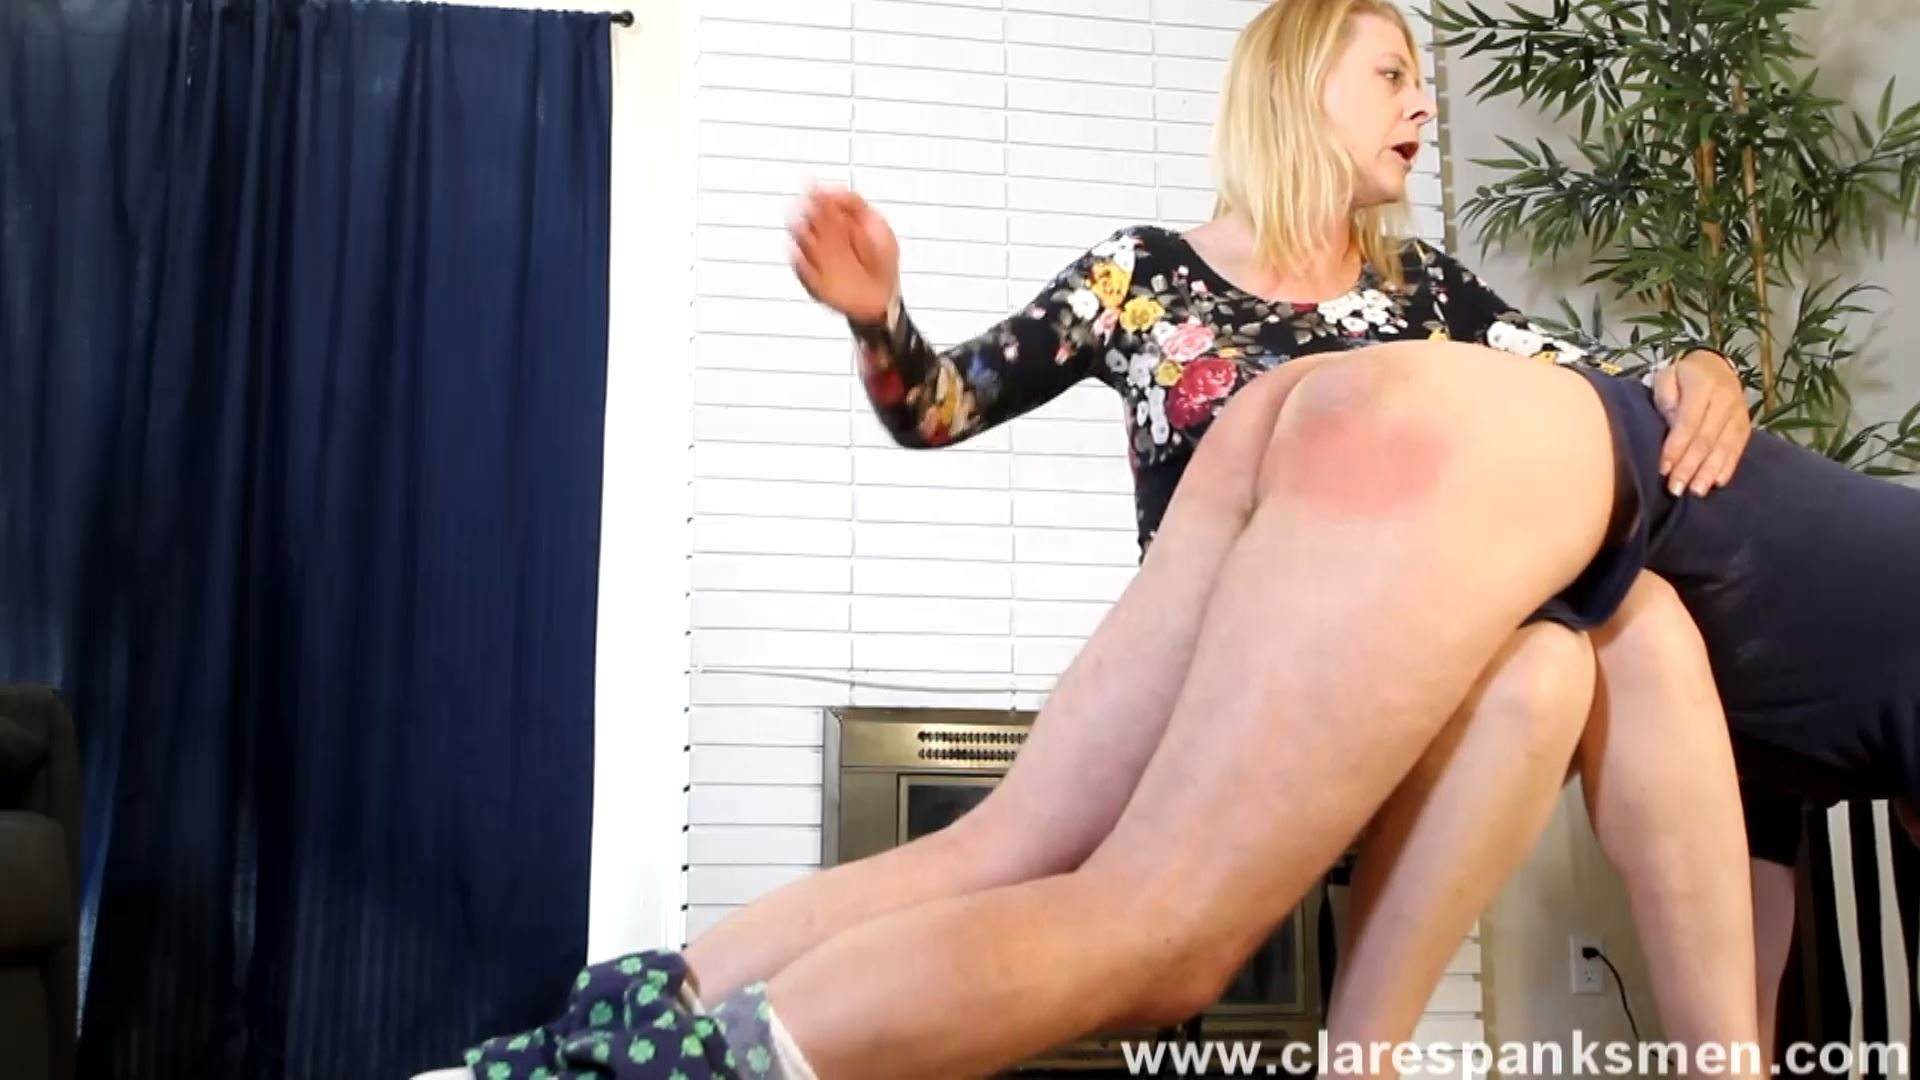 Miss Cassie In Scene: Miss Cassie Spanks Her Husband - CLARESPANKSMEN - FULL HD/1080p/MP4